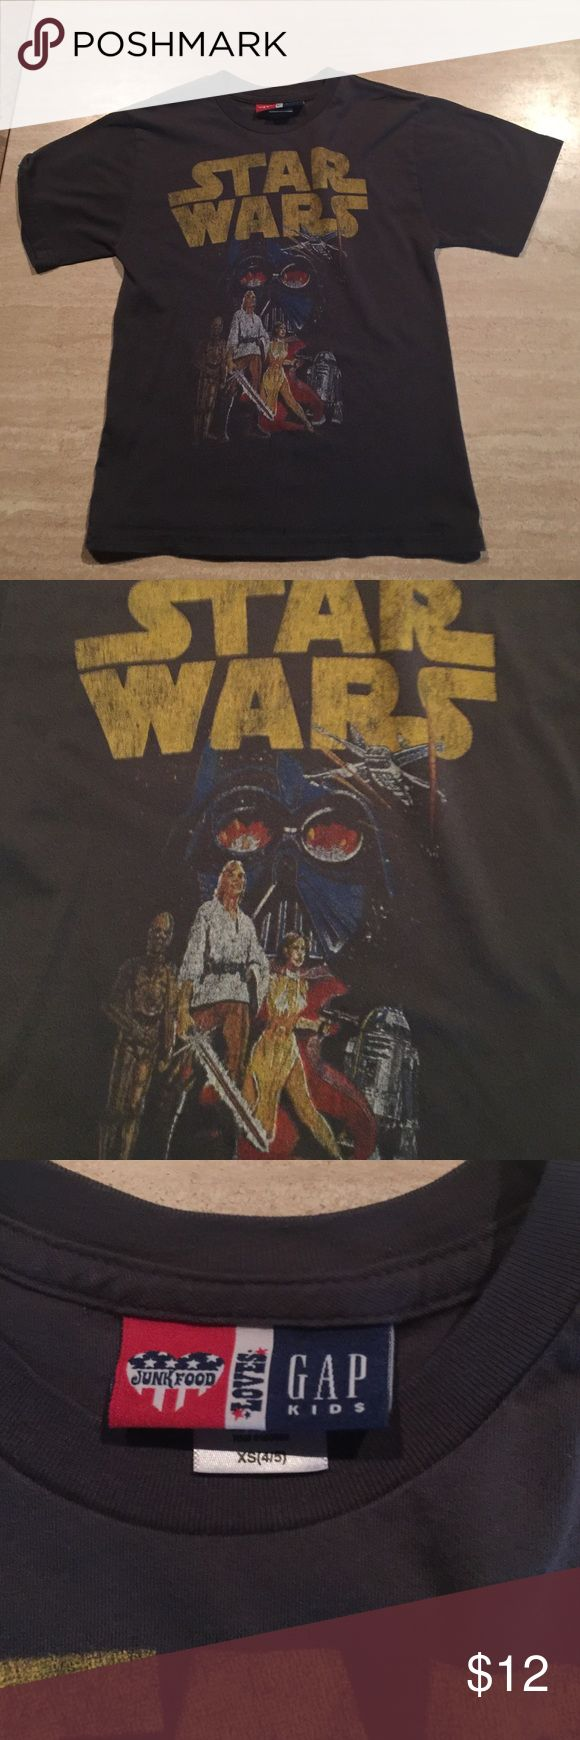 VGUC Junk Food for Gap Kids Star Wars Tee XS 4/5 Very Good used condition. Junk Food Short Sleeve Star wars Tee. XS 4/5. No stains or holes. Slight signs of wash and wear.  Thanks for looking. Please take a peek at my other items for sale. I appreciate the shares. Bundle and save!!!! Junk Food Shirts & Tops Tees - Short Sleeve